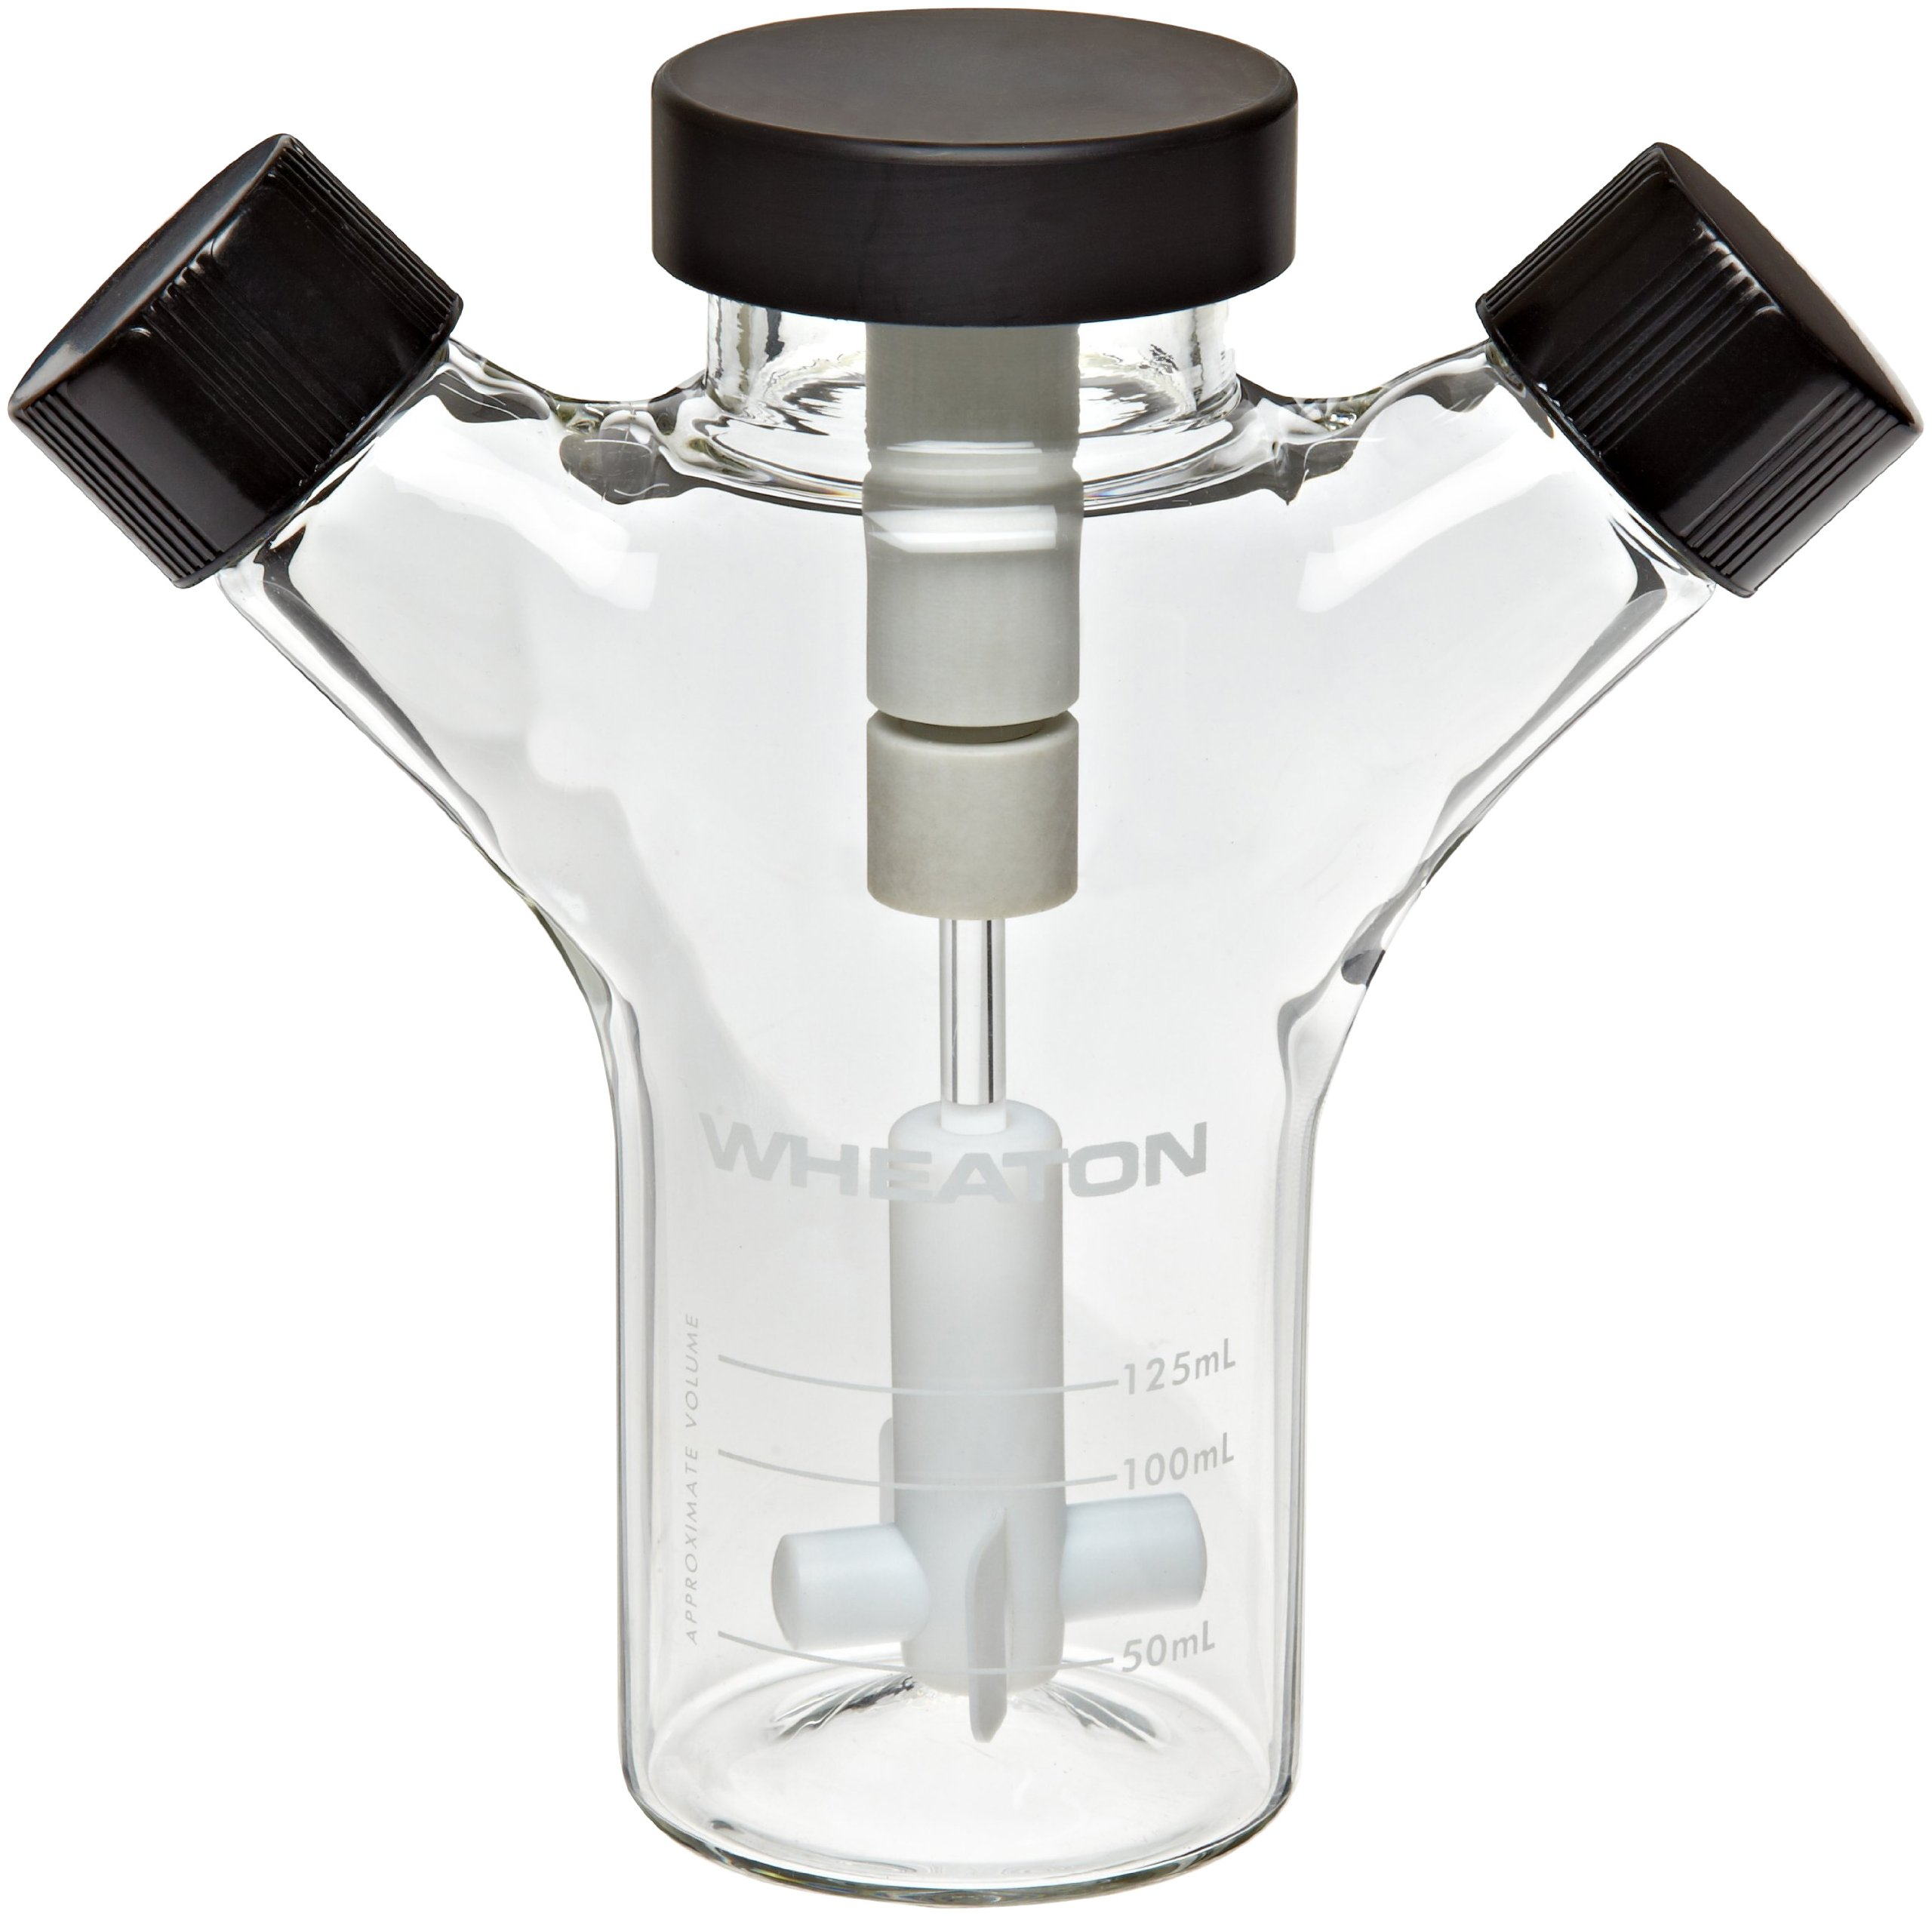 Wheaton 356876 Glass 125mL Celstir Spinner Flask, with 33-430 Screw Caps, 65mm x 155mm